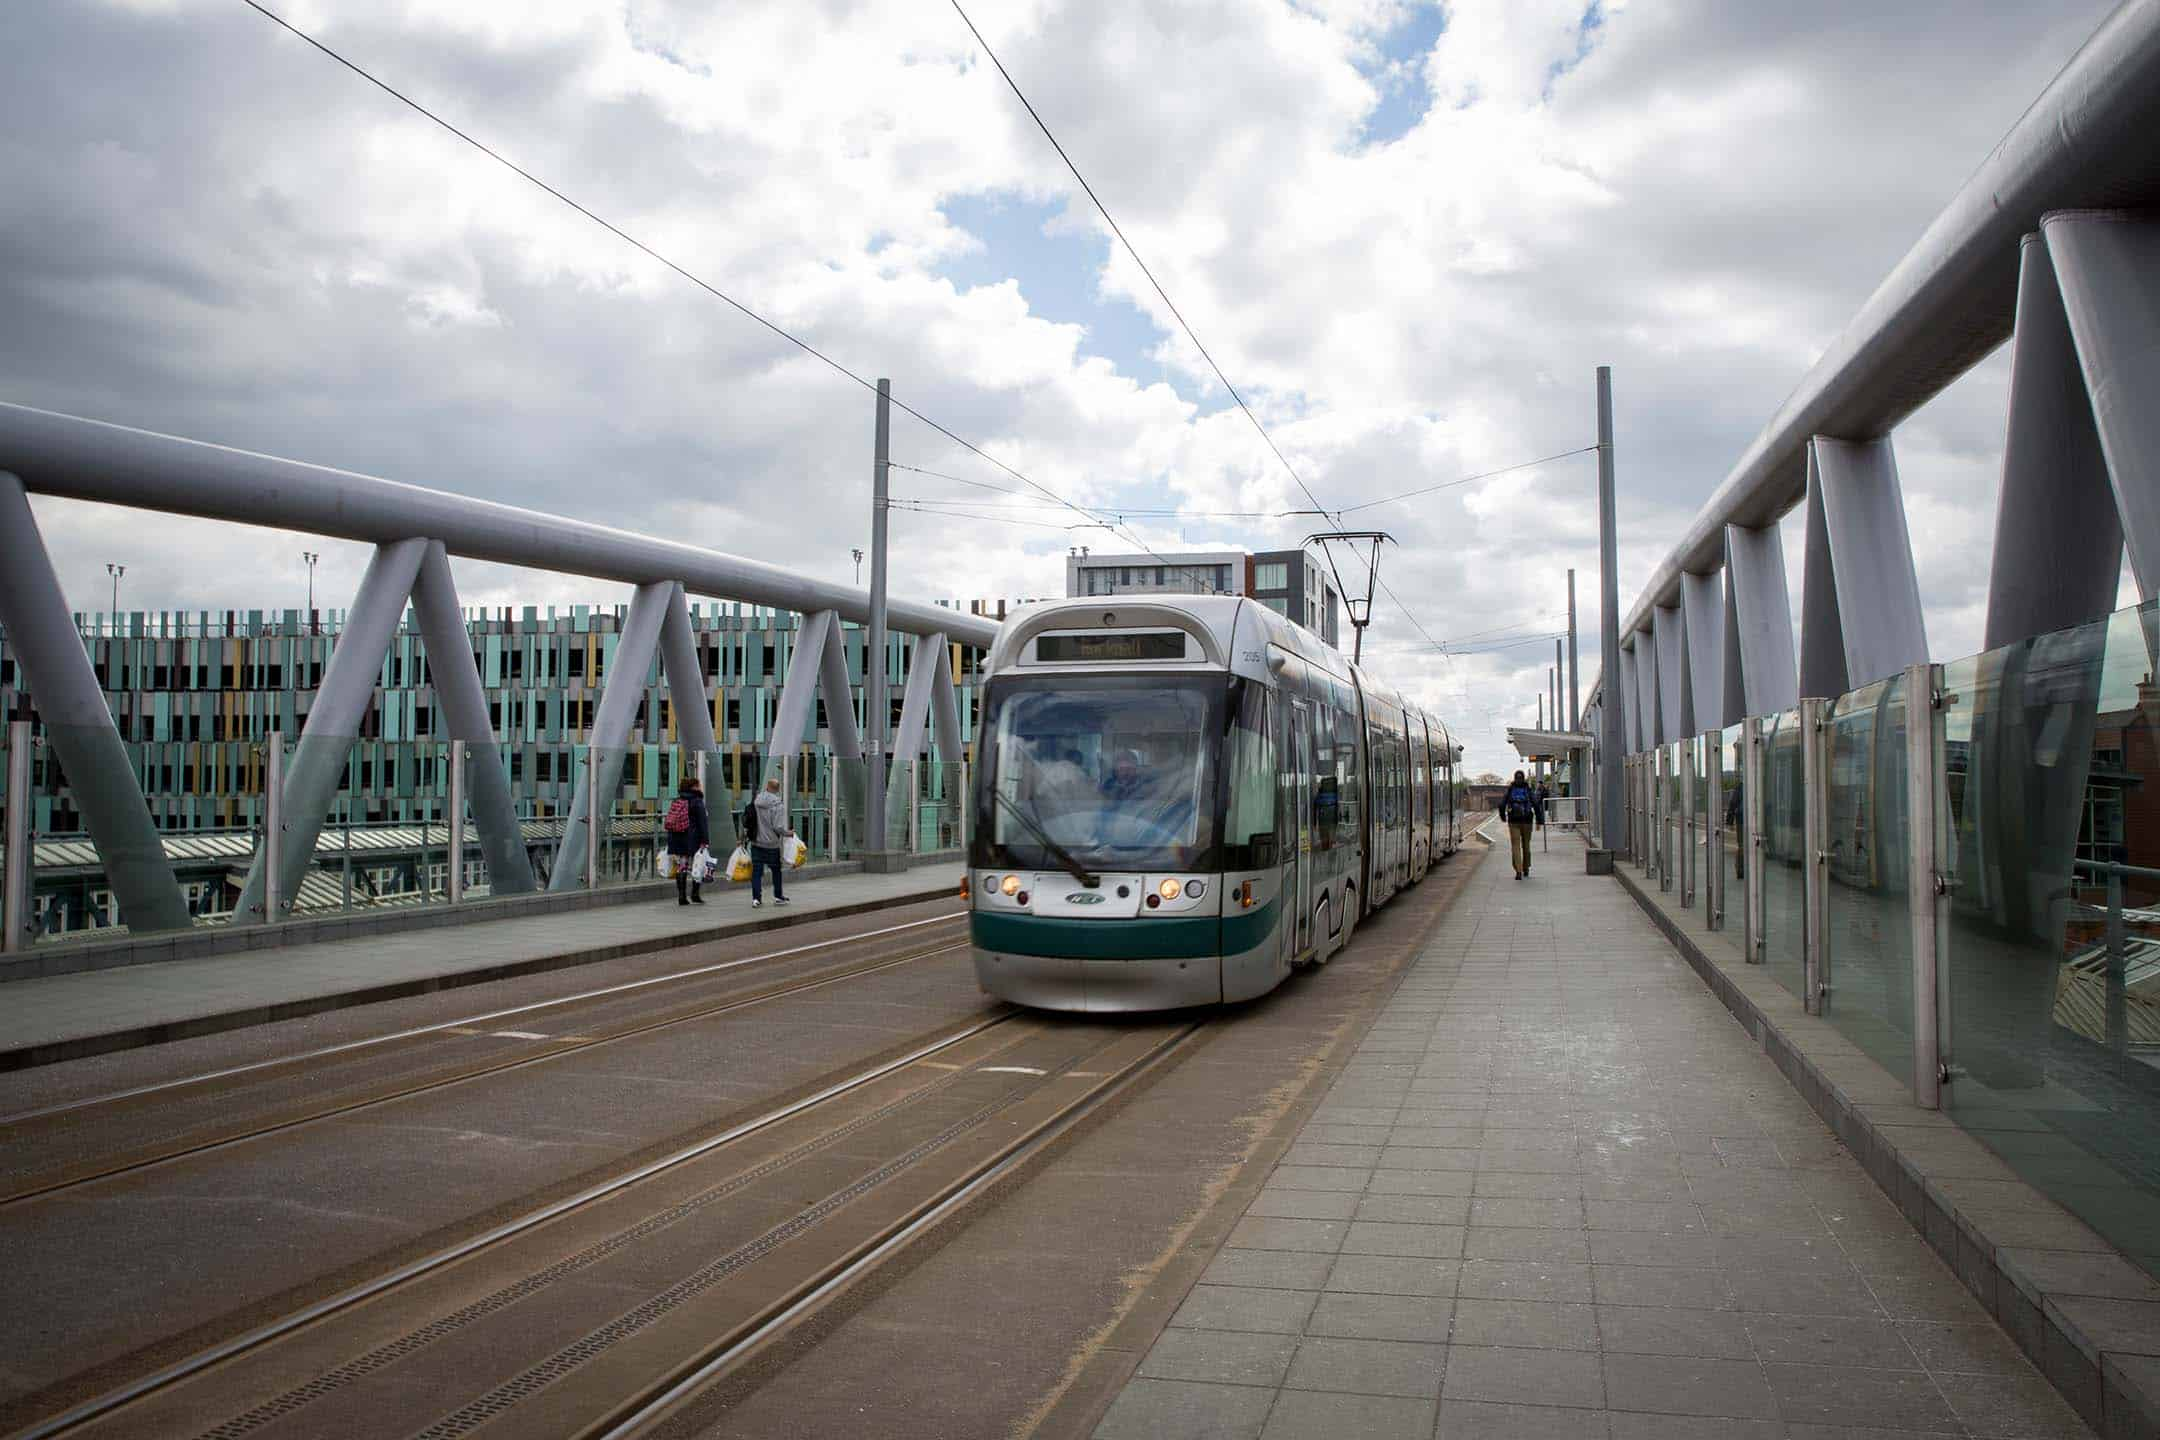 A Tram in a city centre